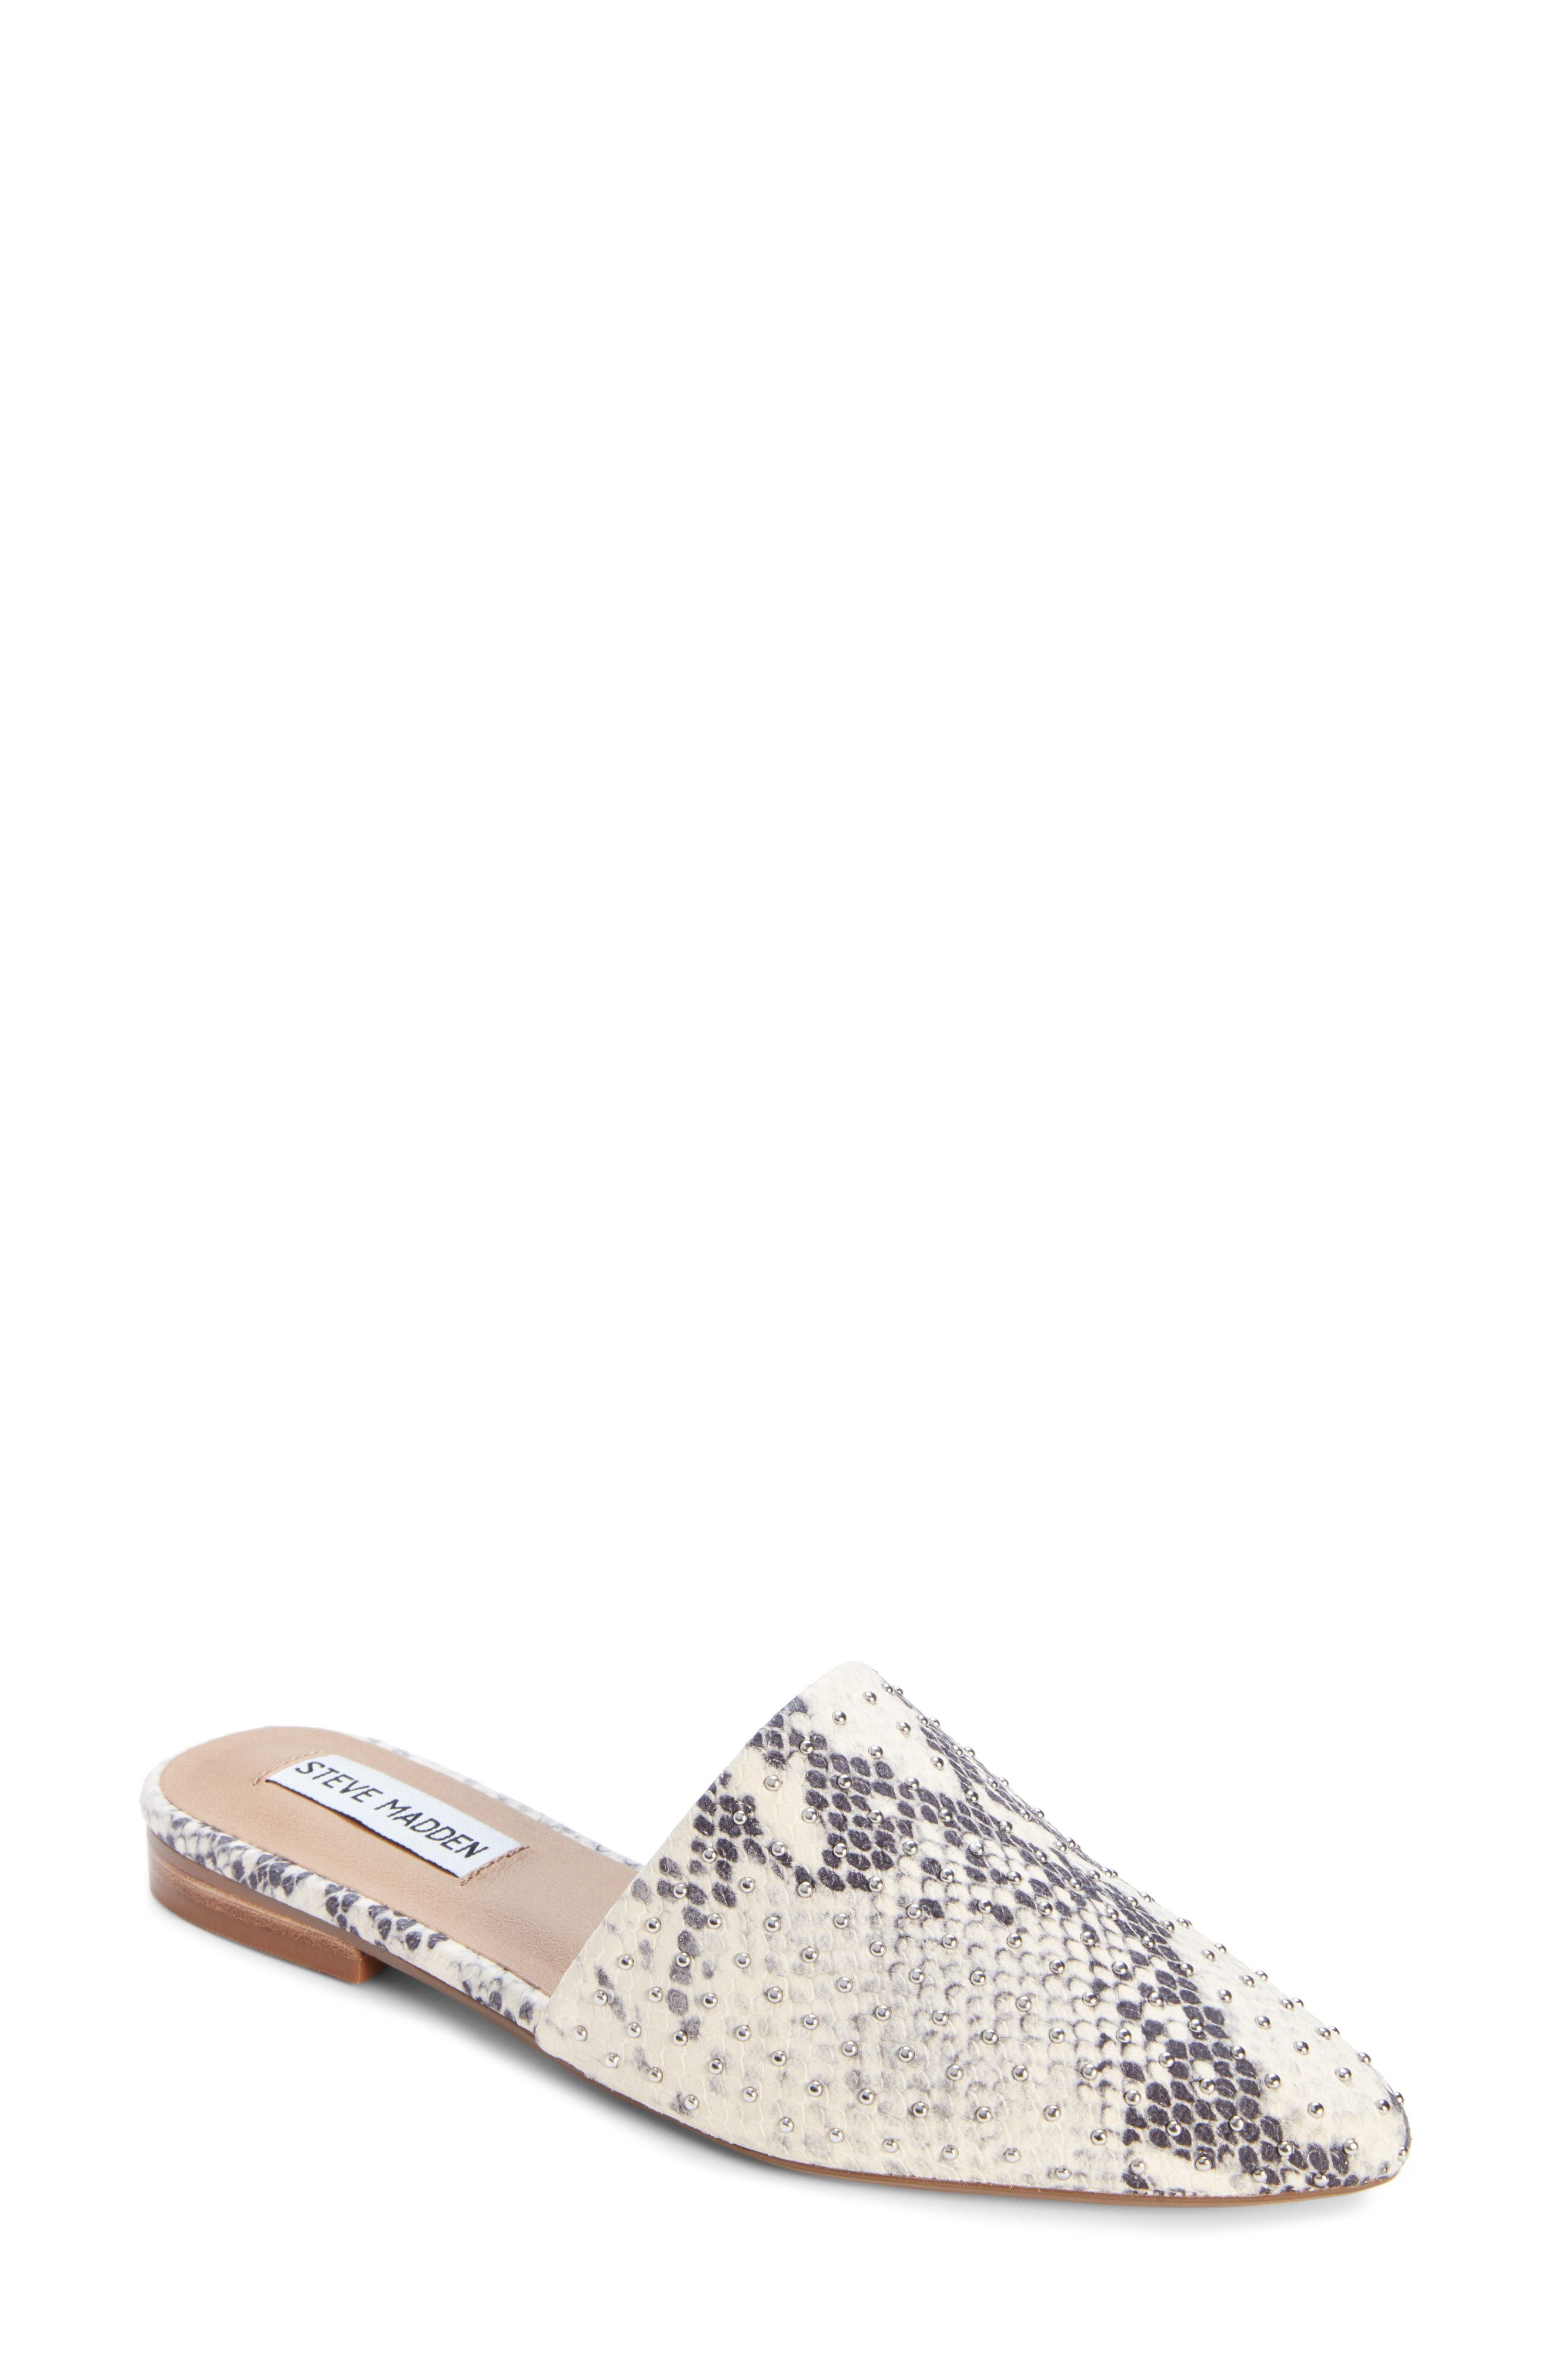 28685e61e63 Steve Madden Trace Studded Mule available at  Nordstrom